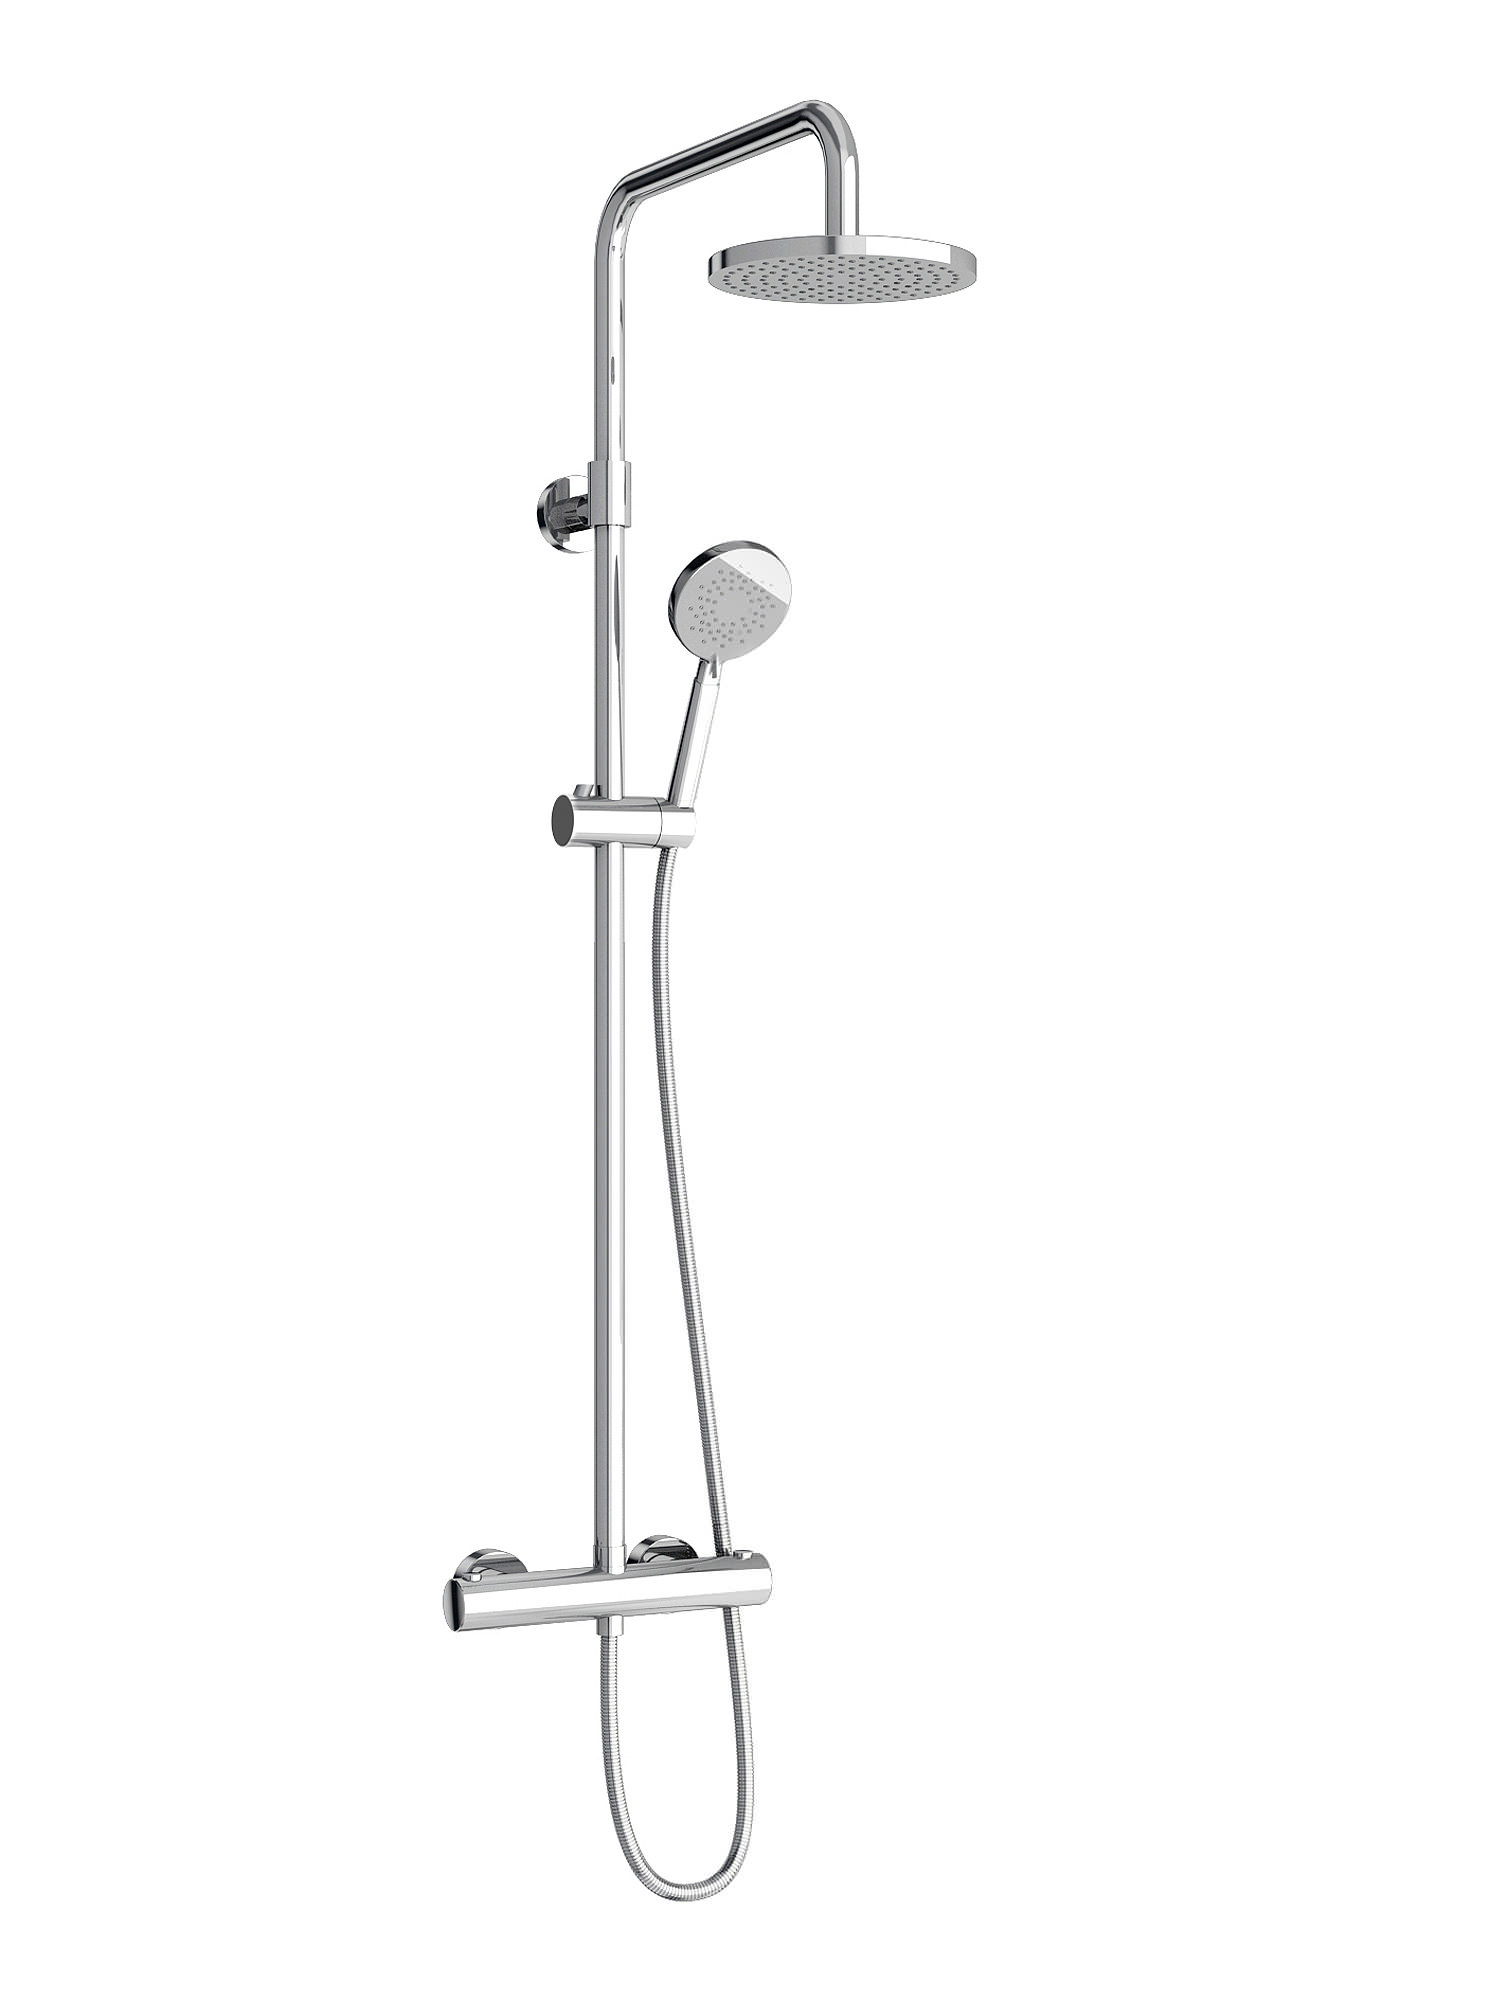 Jupiter 1700mm P B Shaped 6 Jet Whirlpool Shower Bath With Toilet Cistern Wash Basin Pedestal 34869 P also swim bike run poster 574431158 likewise Underground Electrical Service To House Detail Of Electric Service With Mouse Nest C Underground Electrical Service To House together with Helix together with Fig23b. on shower panel